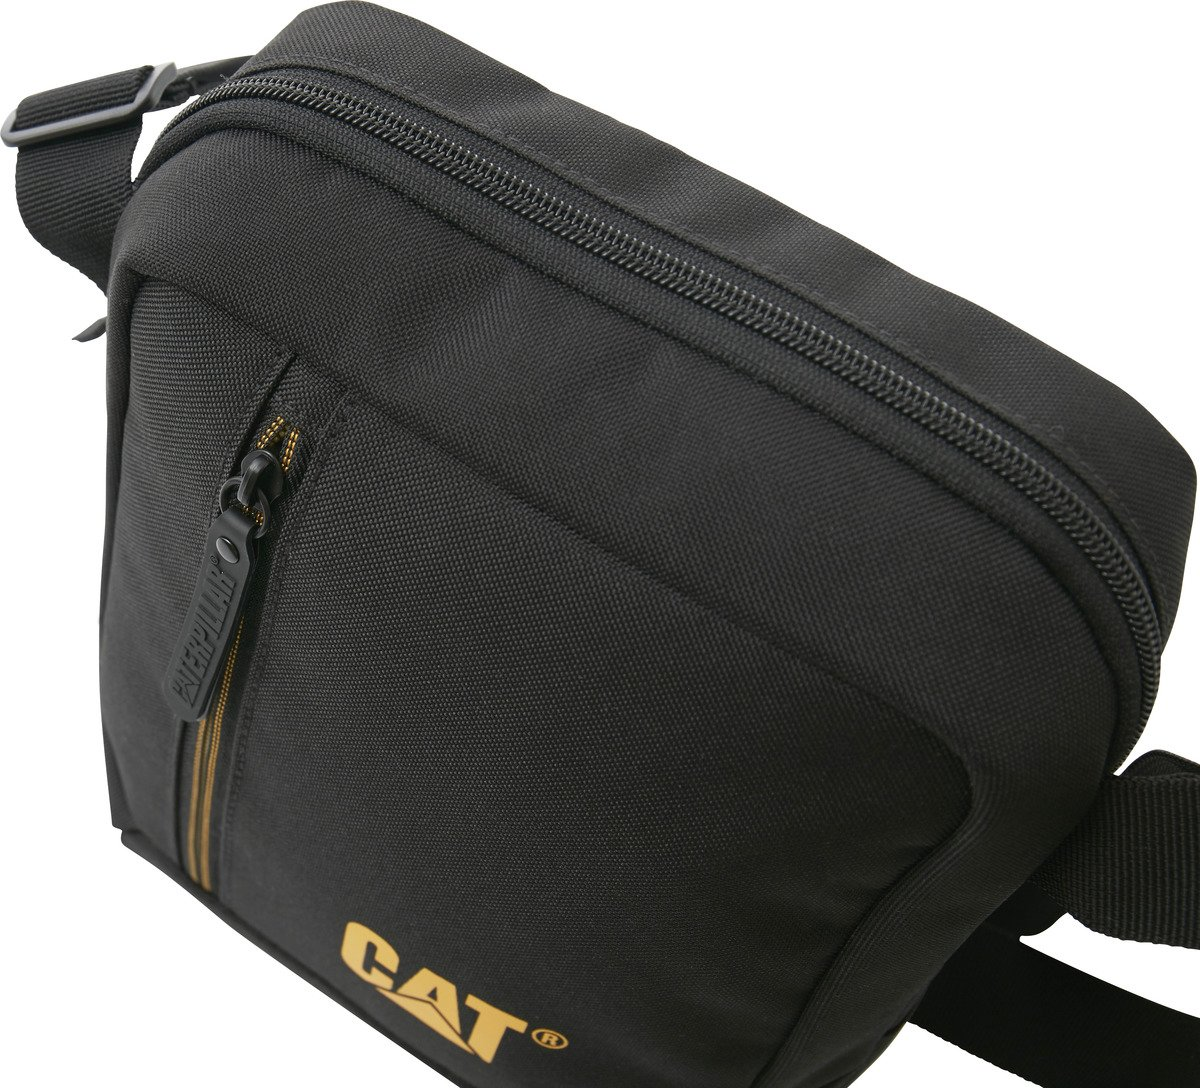 "Torba CAT Caterpillar na tablet do 10""  The Project zielona"